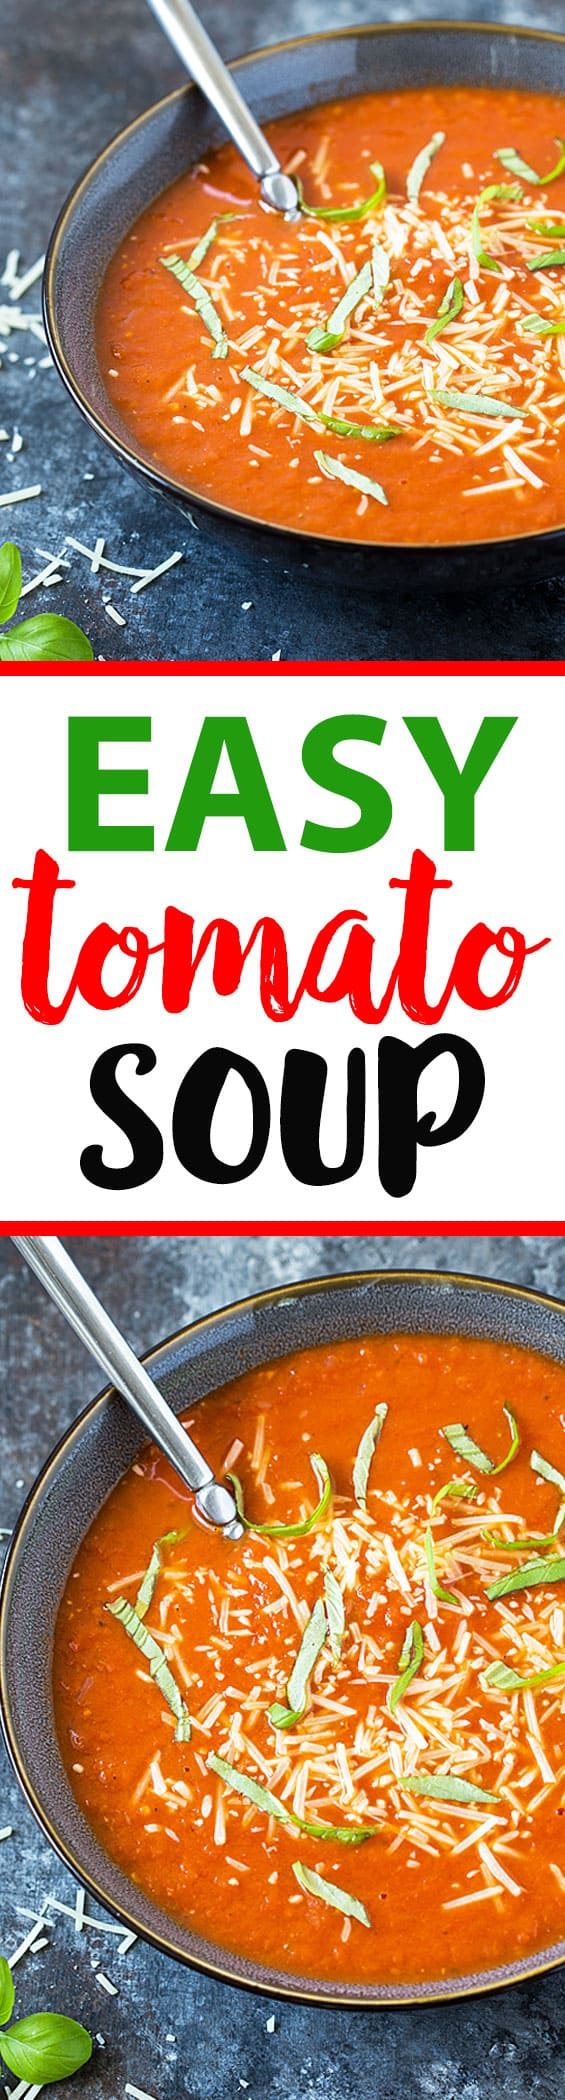 Easy Tomato Soup Recipe– A quick, easy and satisfying tomato soup that is prepared in less than 30 minutes!